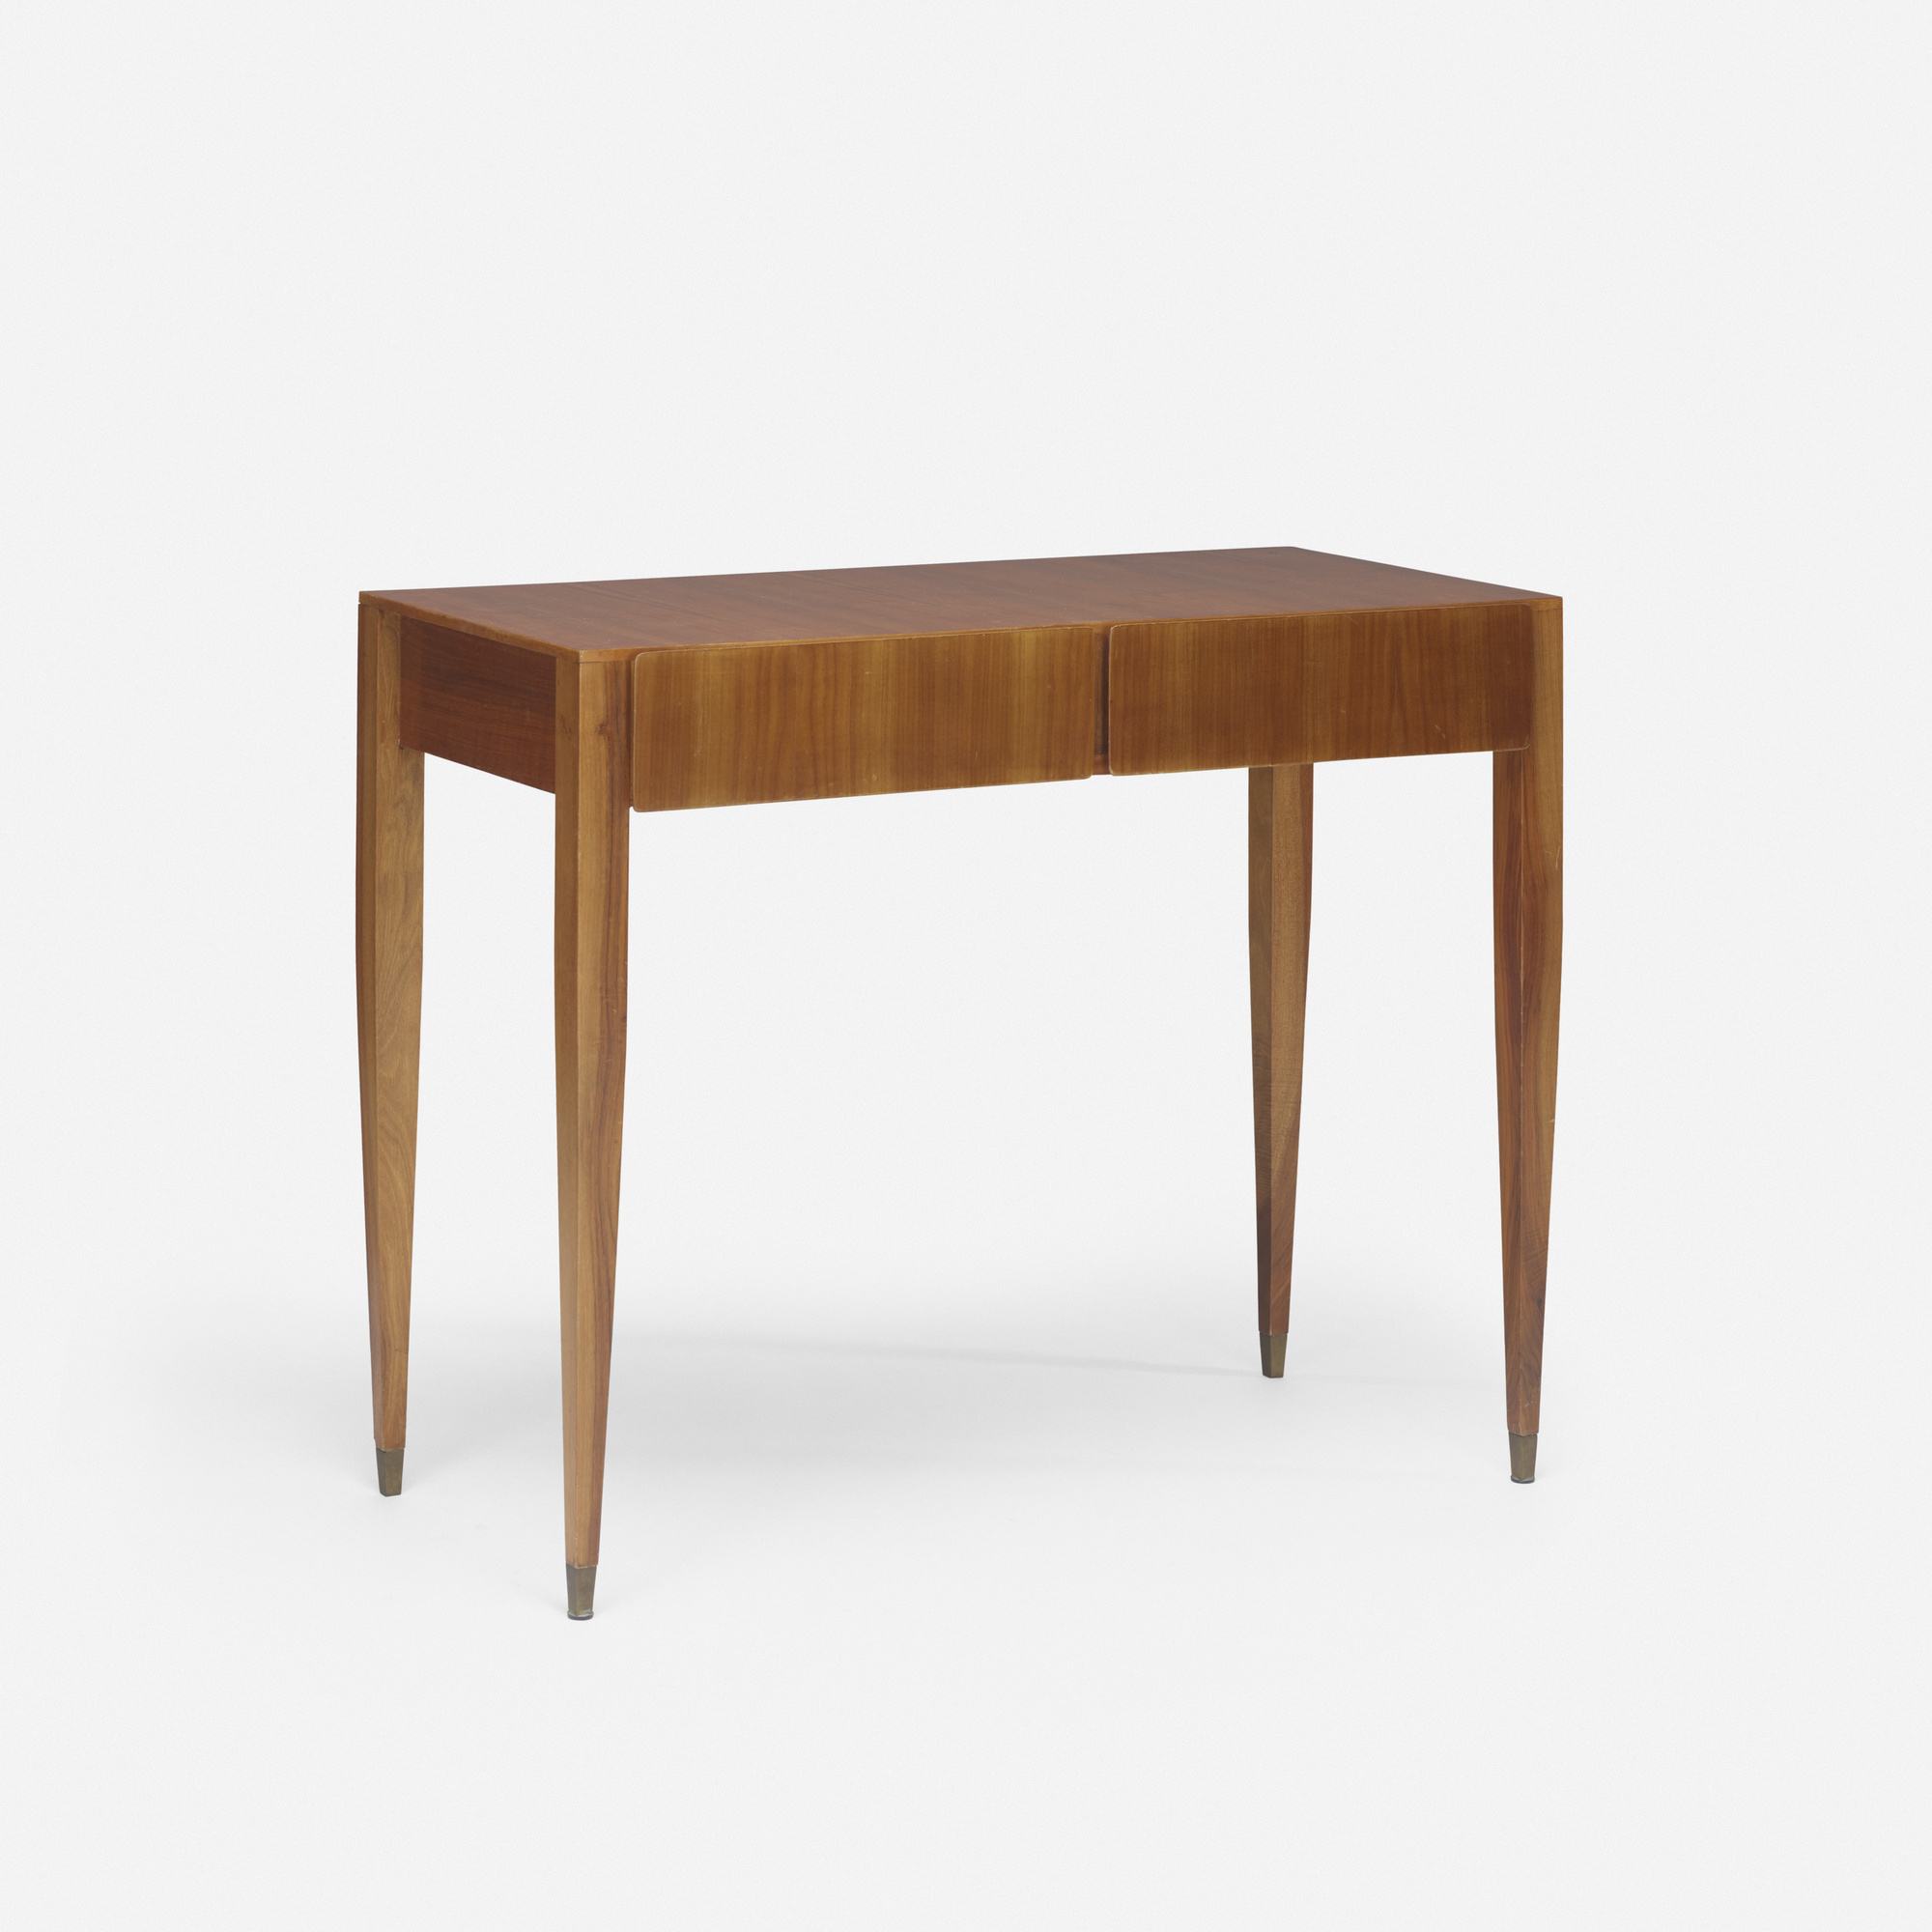 306: Gio Ponti / console from the Royal Hotel, Naples (1 of 3)